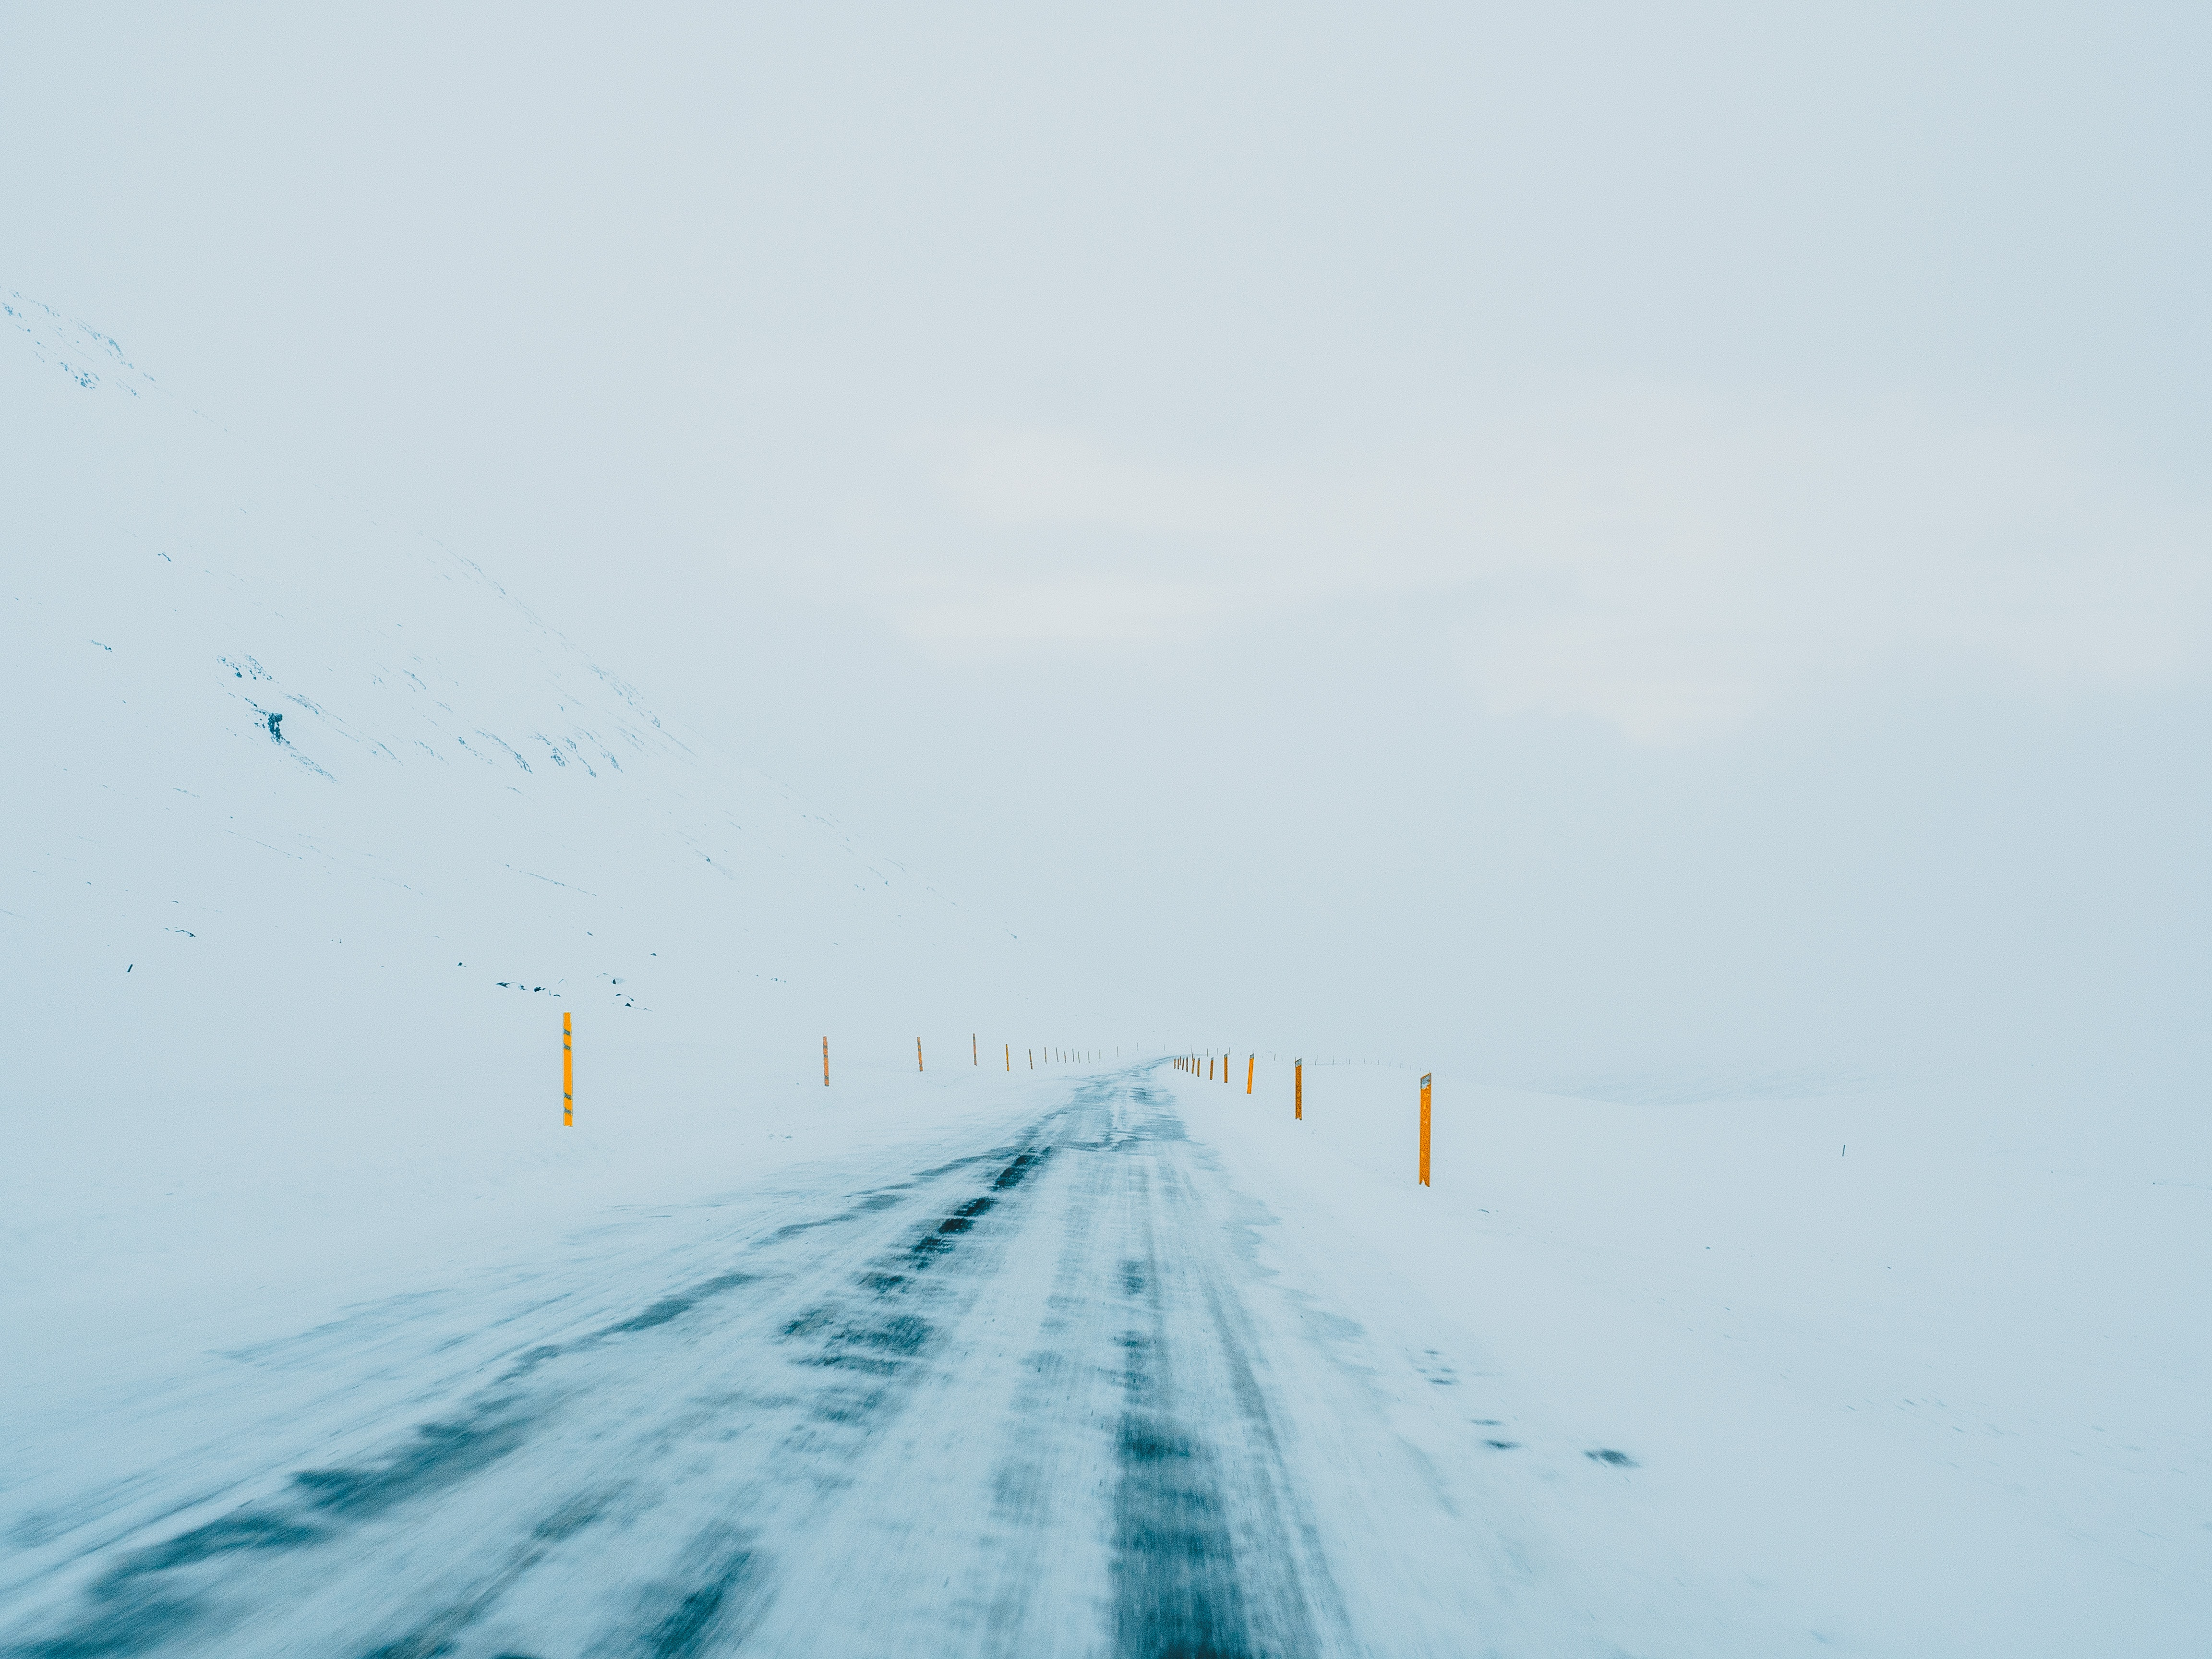 road coated by snow